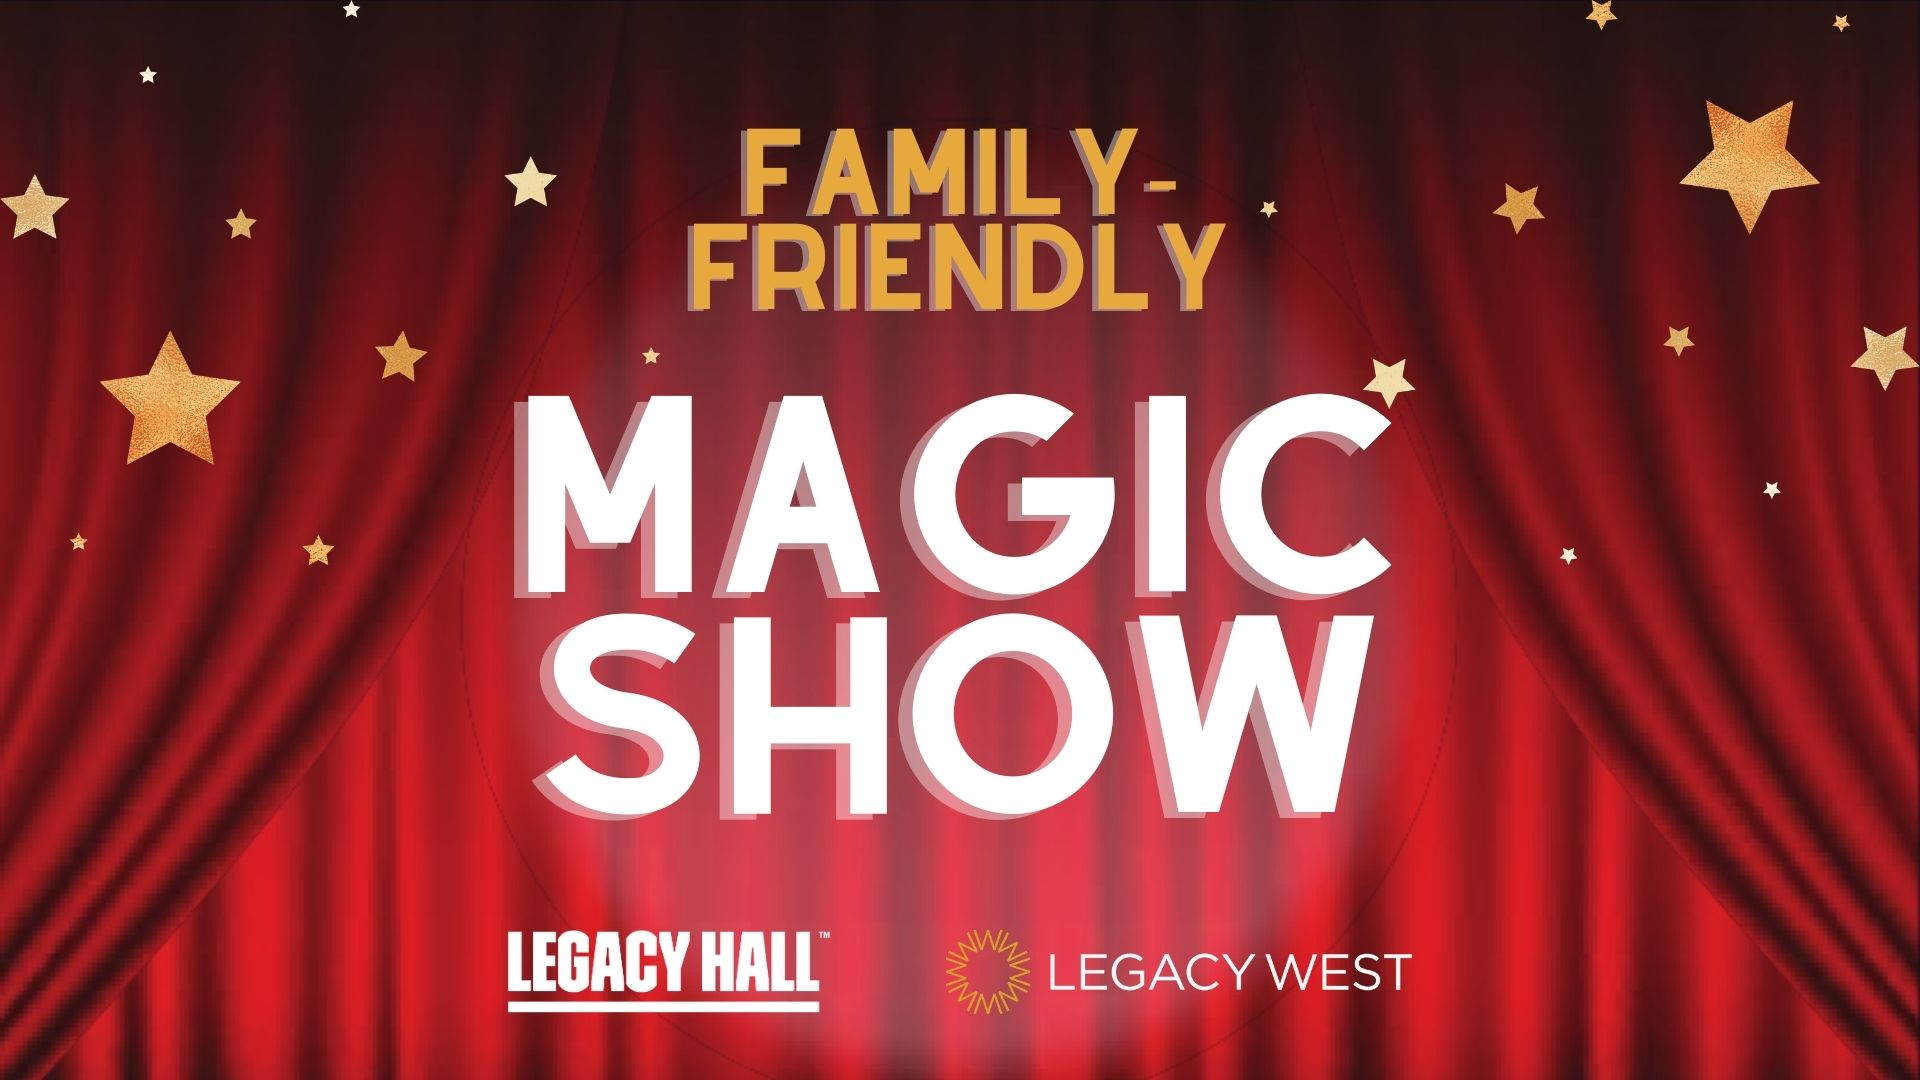 Promo image of Family-Friendly Magic Show